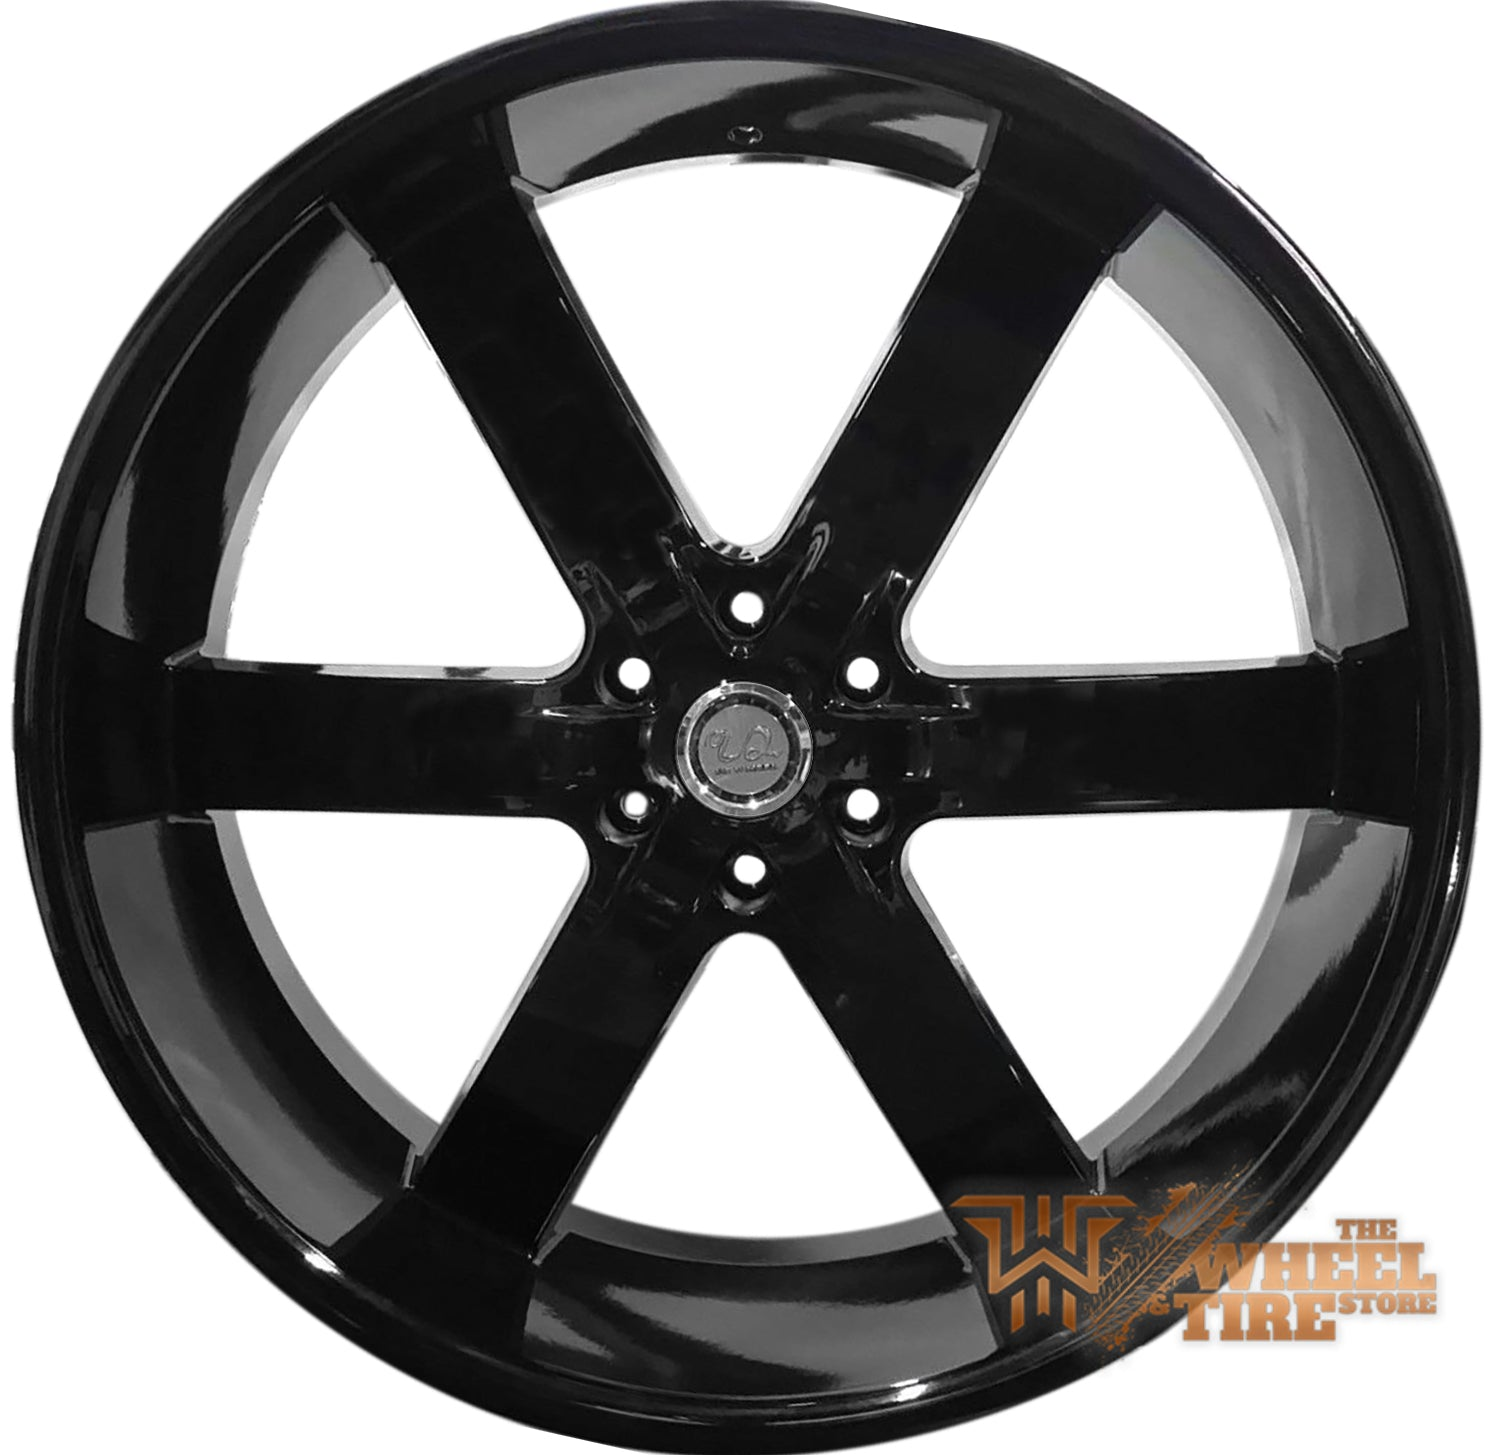 U2 U2-55 Wheel in Gloss Black